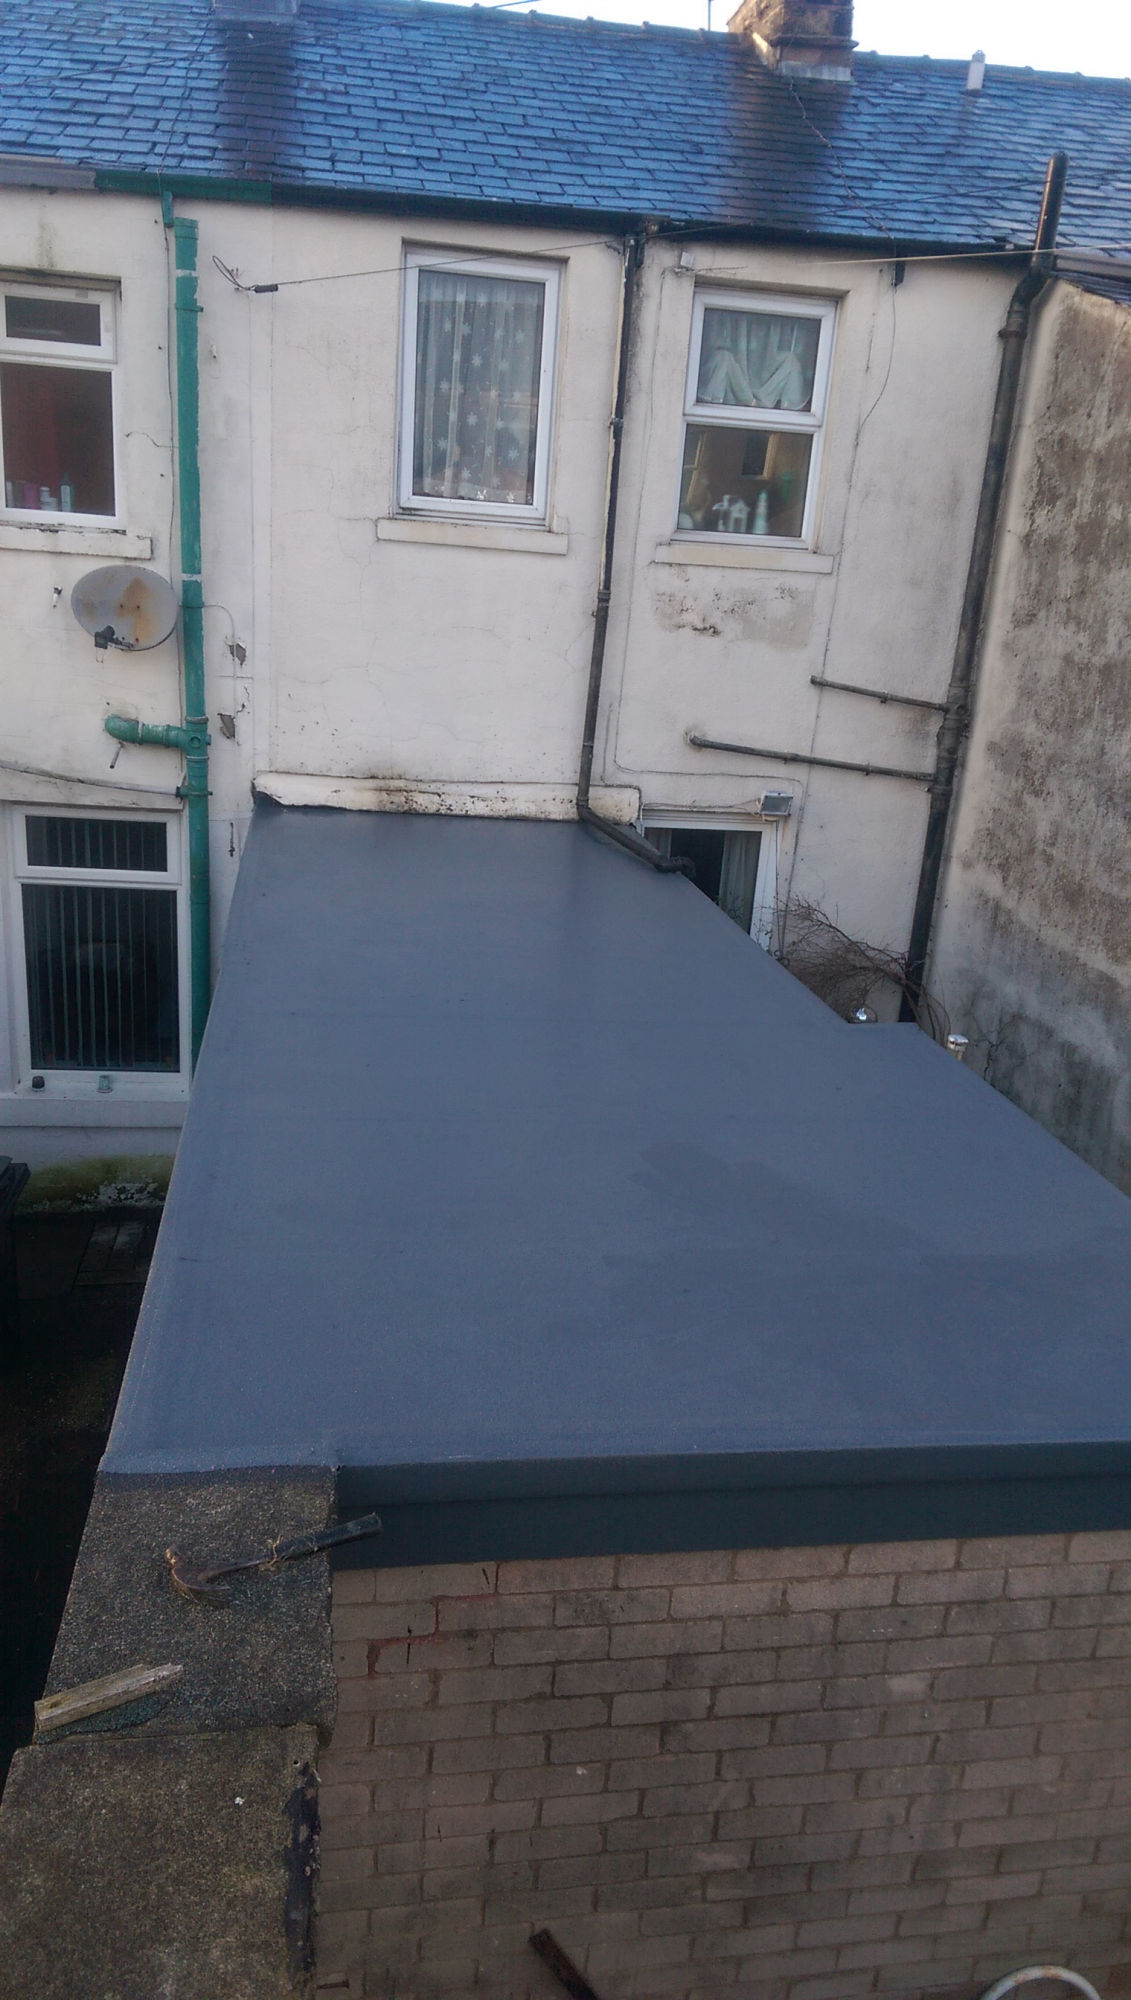 Kitchen extension flat roof repair in Nelson